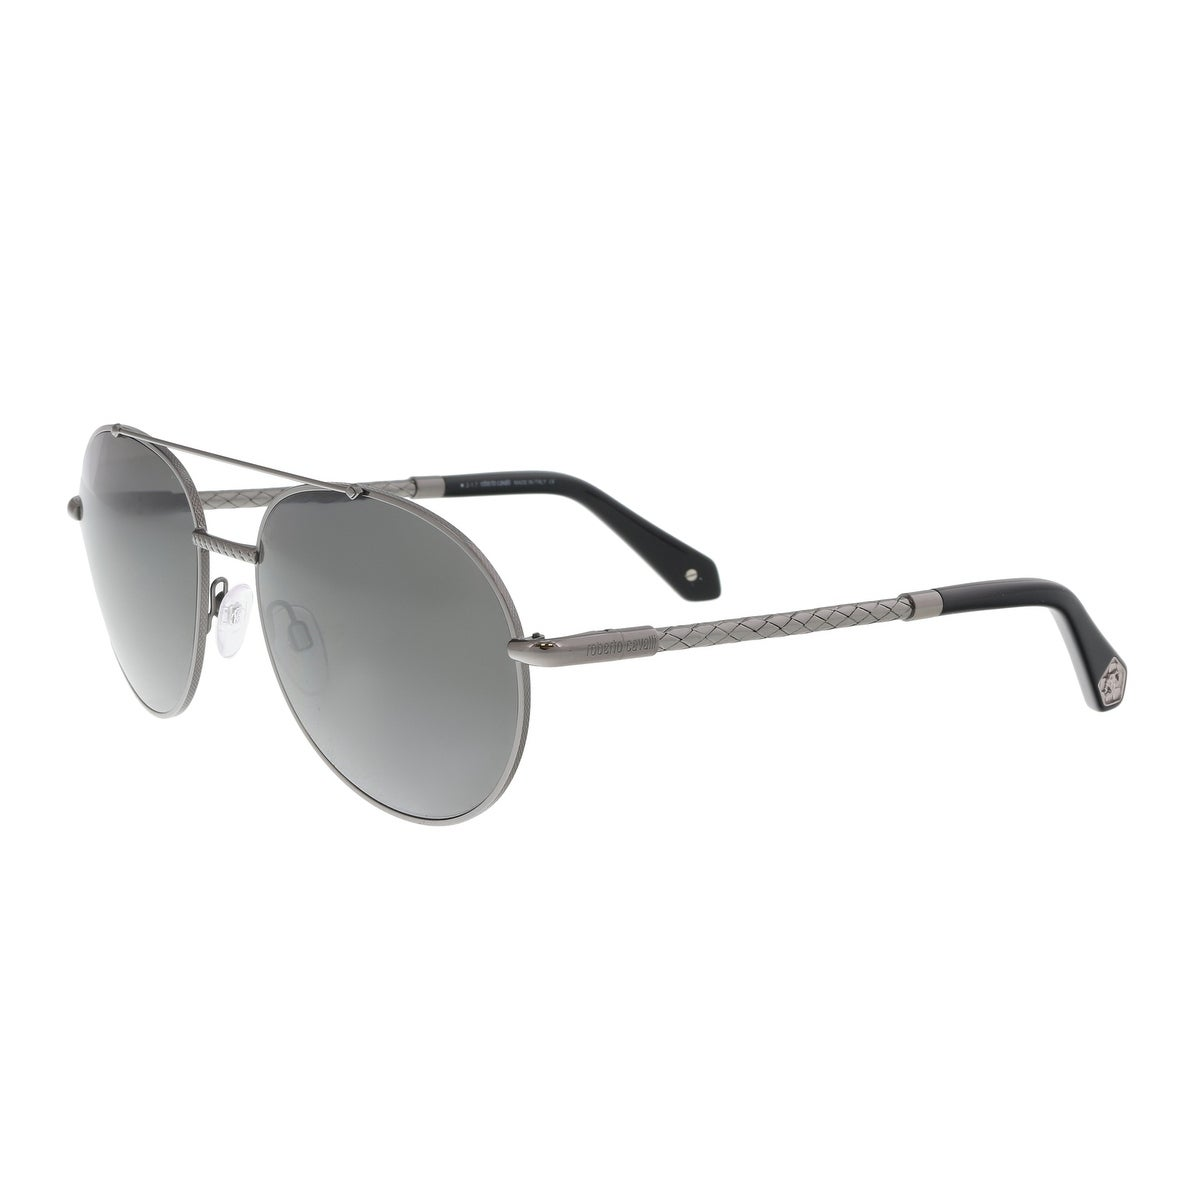 afaaf2c393cb Roberto Cavalli Sunglasses   Shop our Best Clothing & Shoes Deals Online at  Overstock